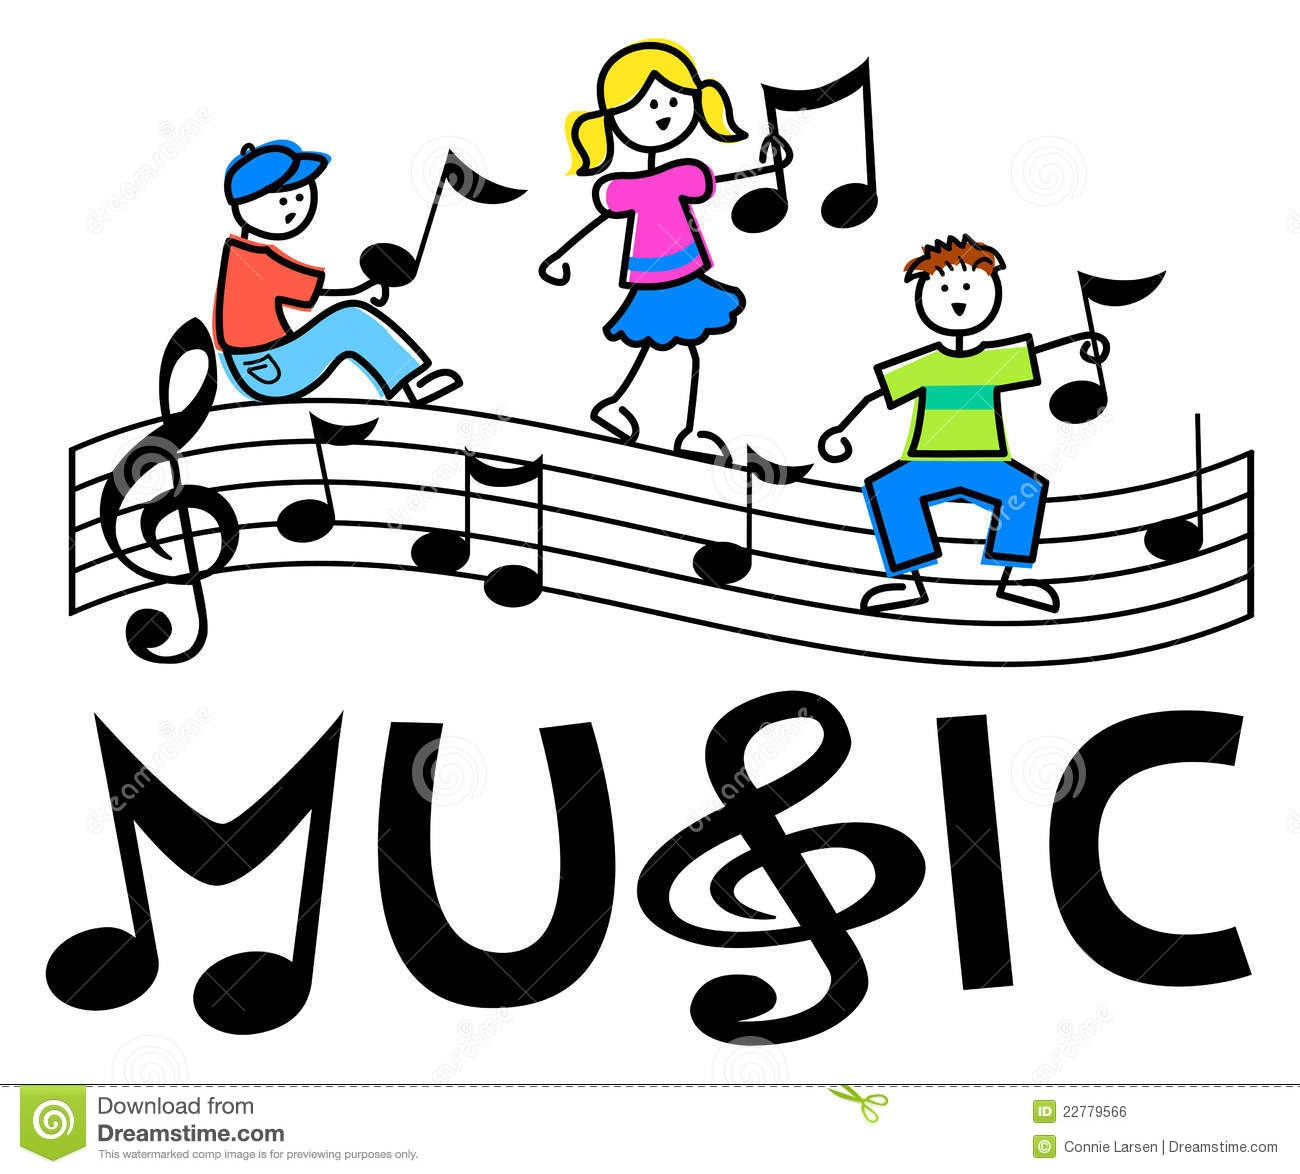 Class free download best. Band clipart music classroom